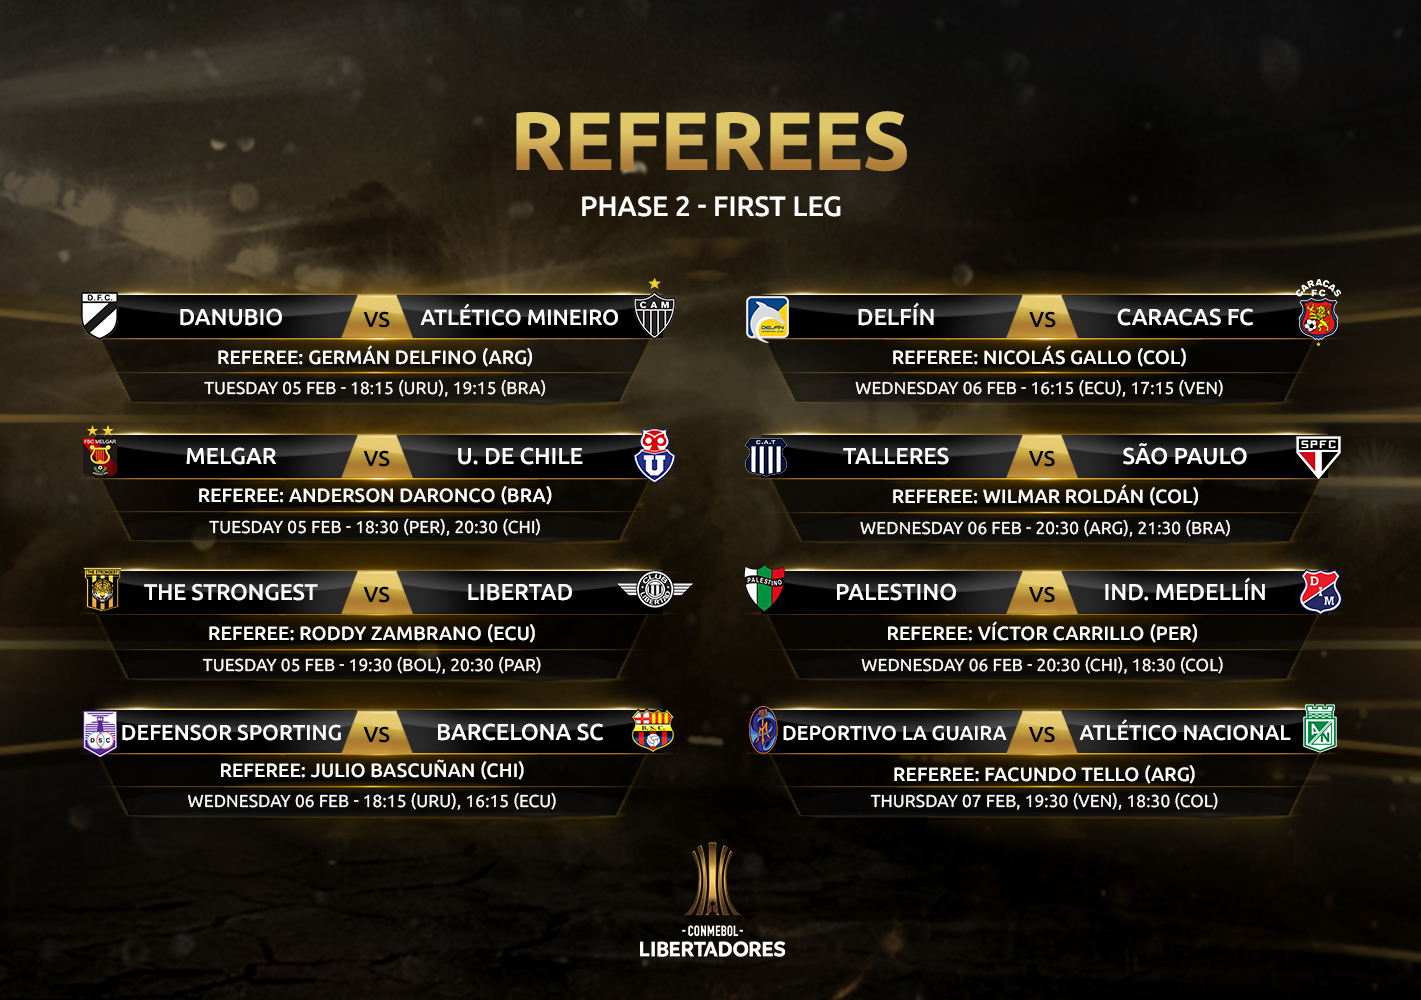 Referees 1st leg, Phase 2